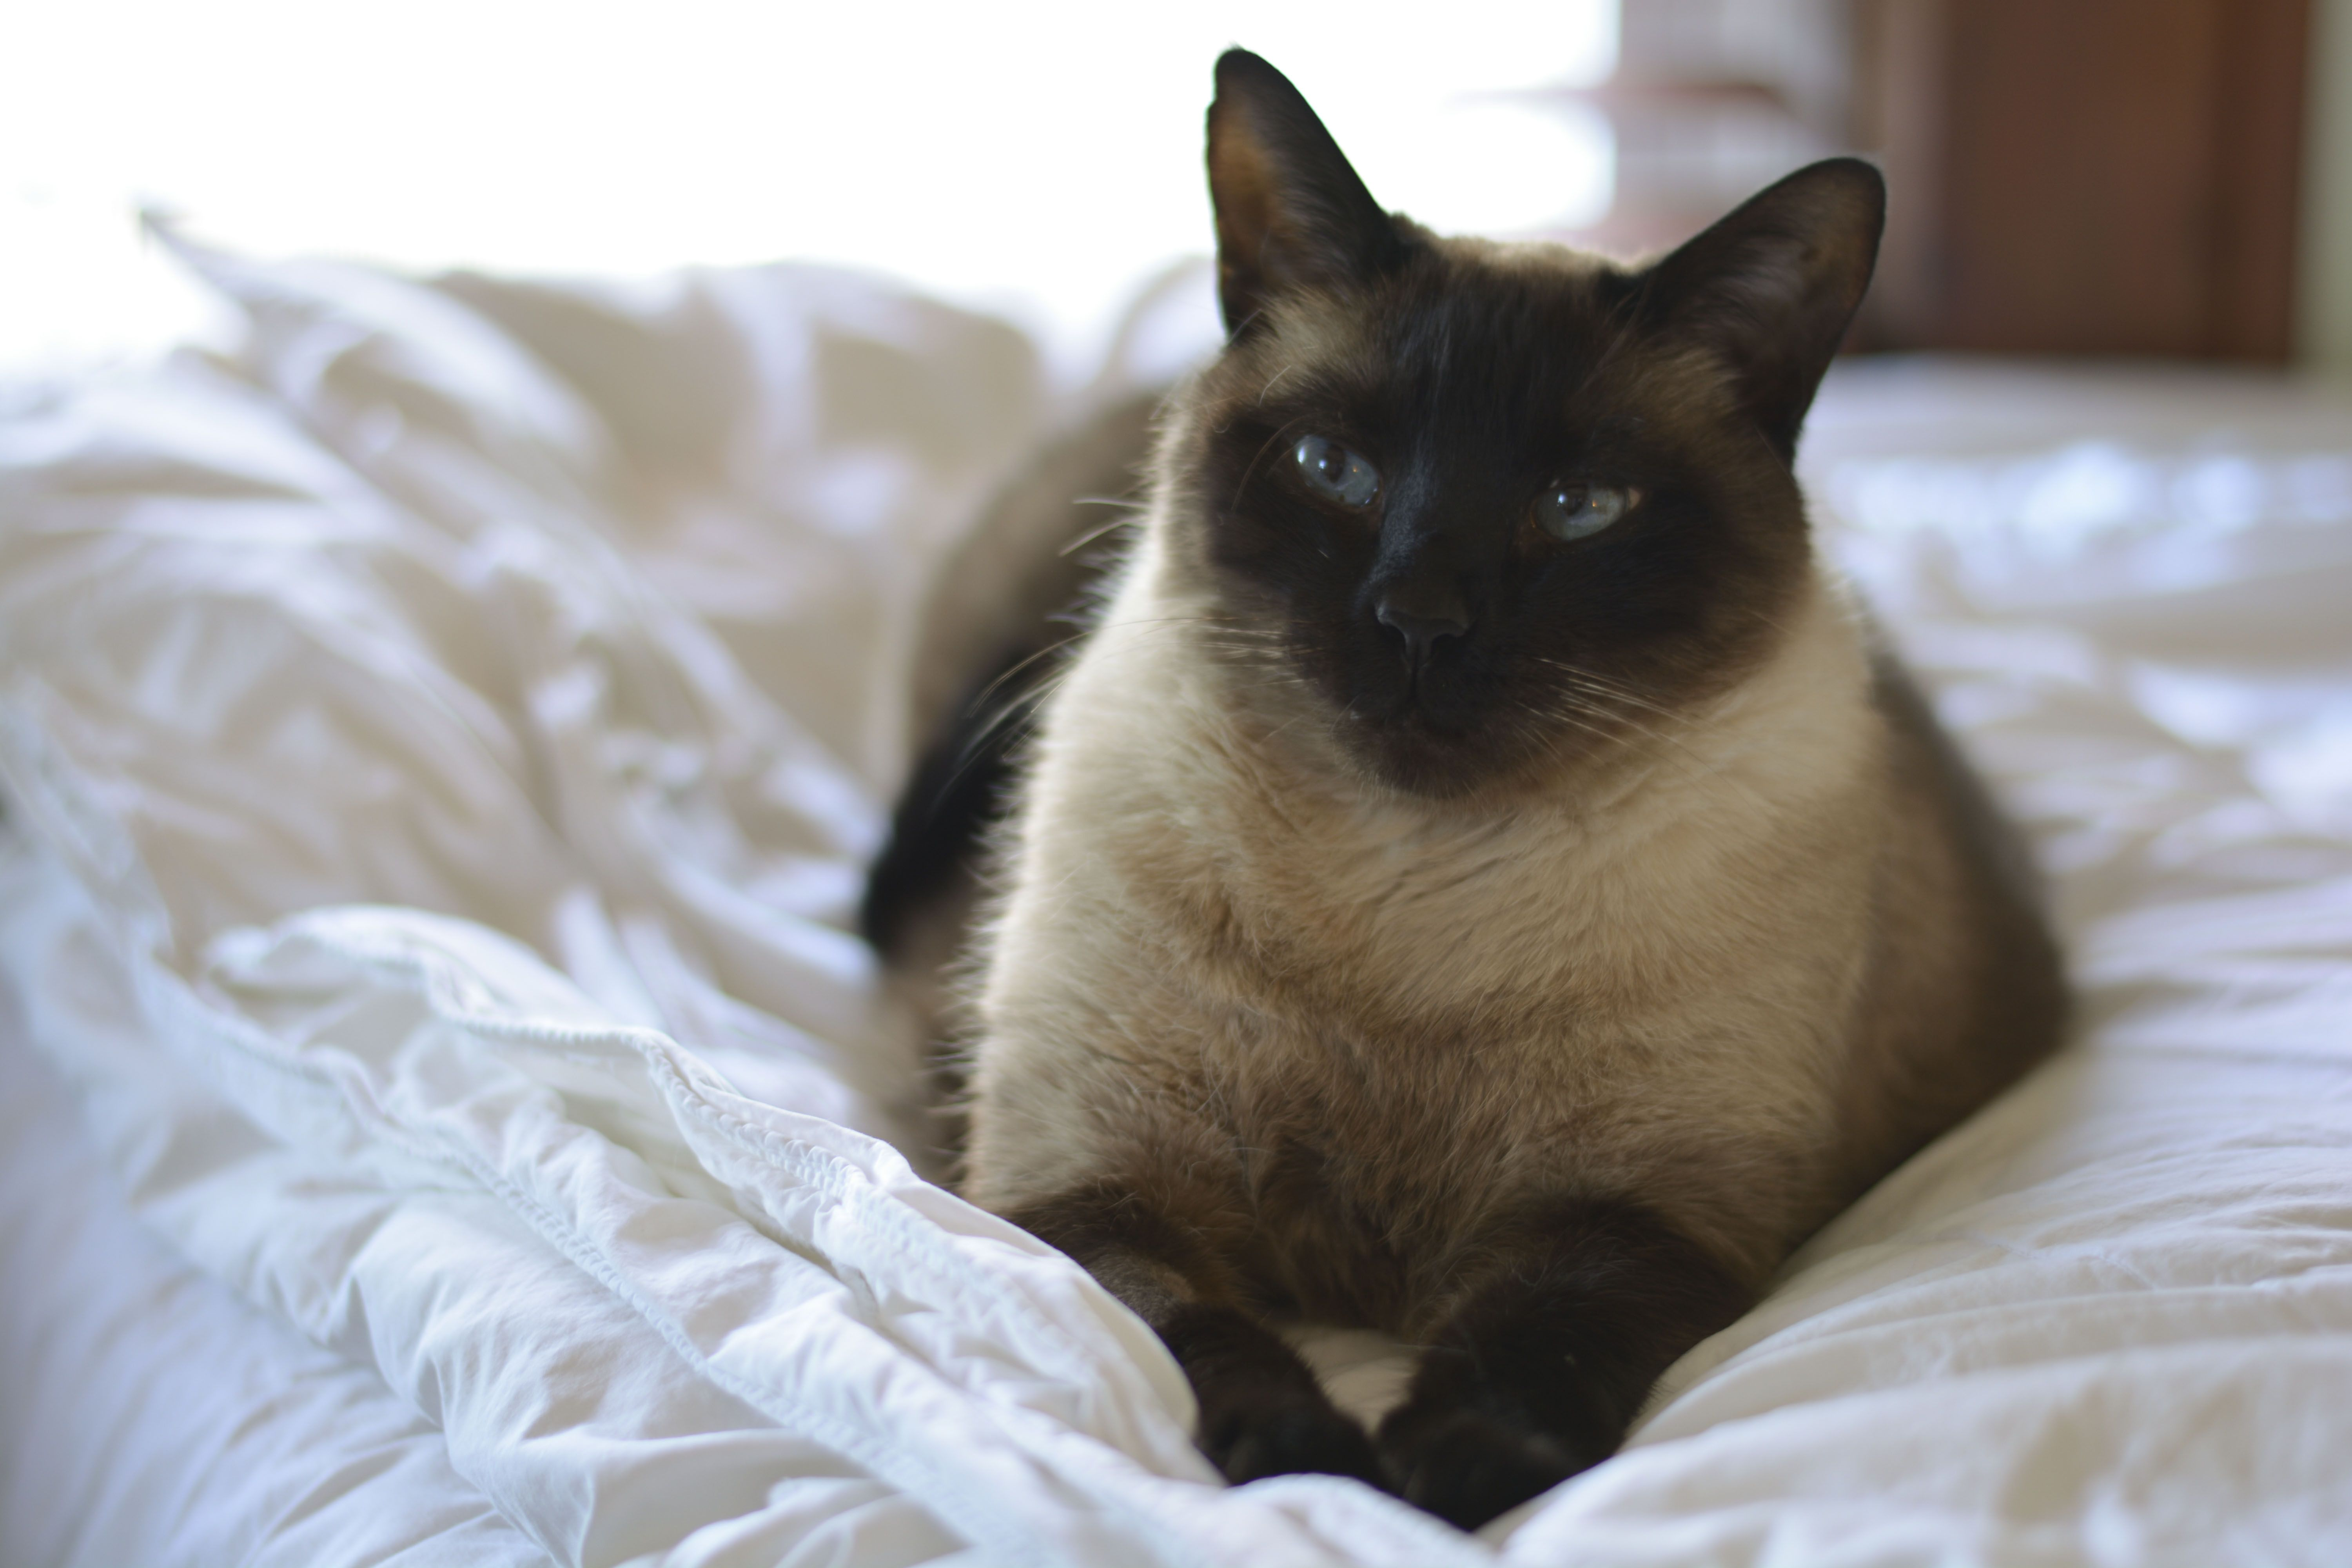 Siamese cat enjoying a peaceful day by the window